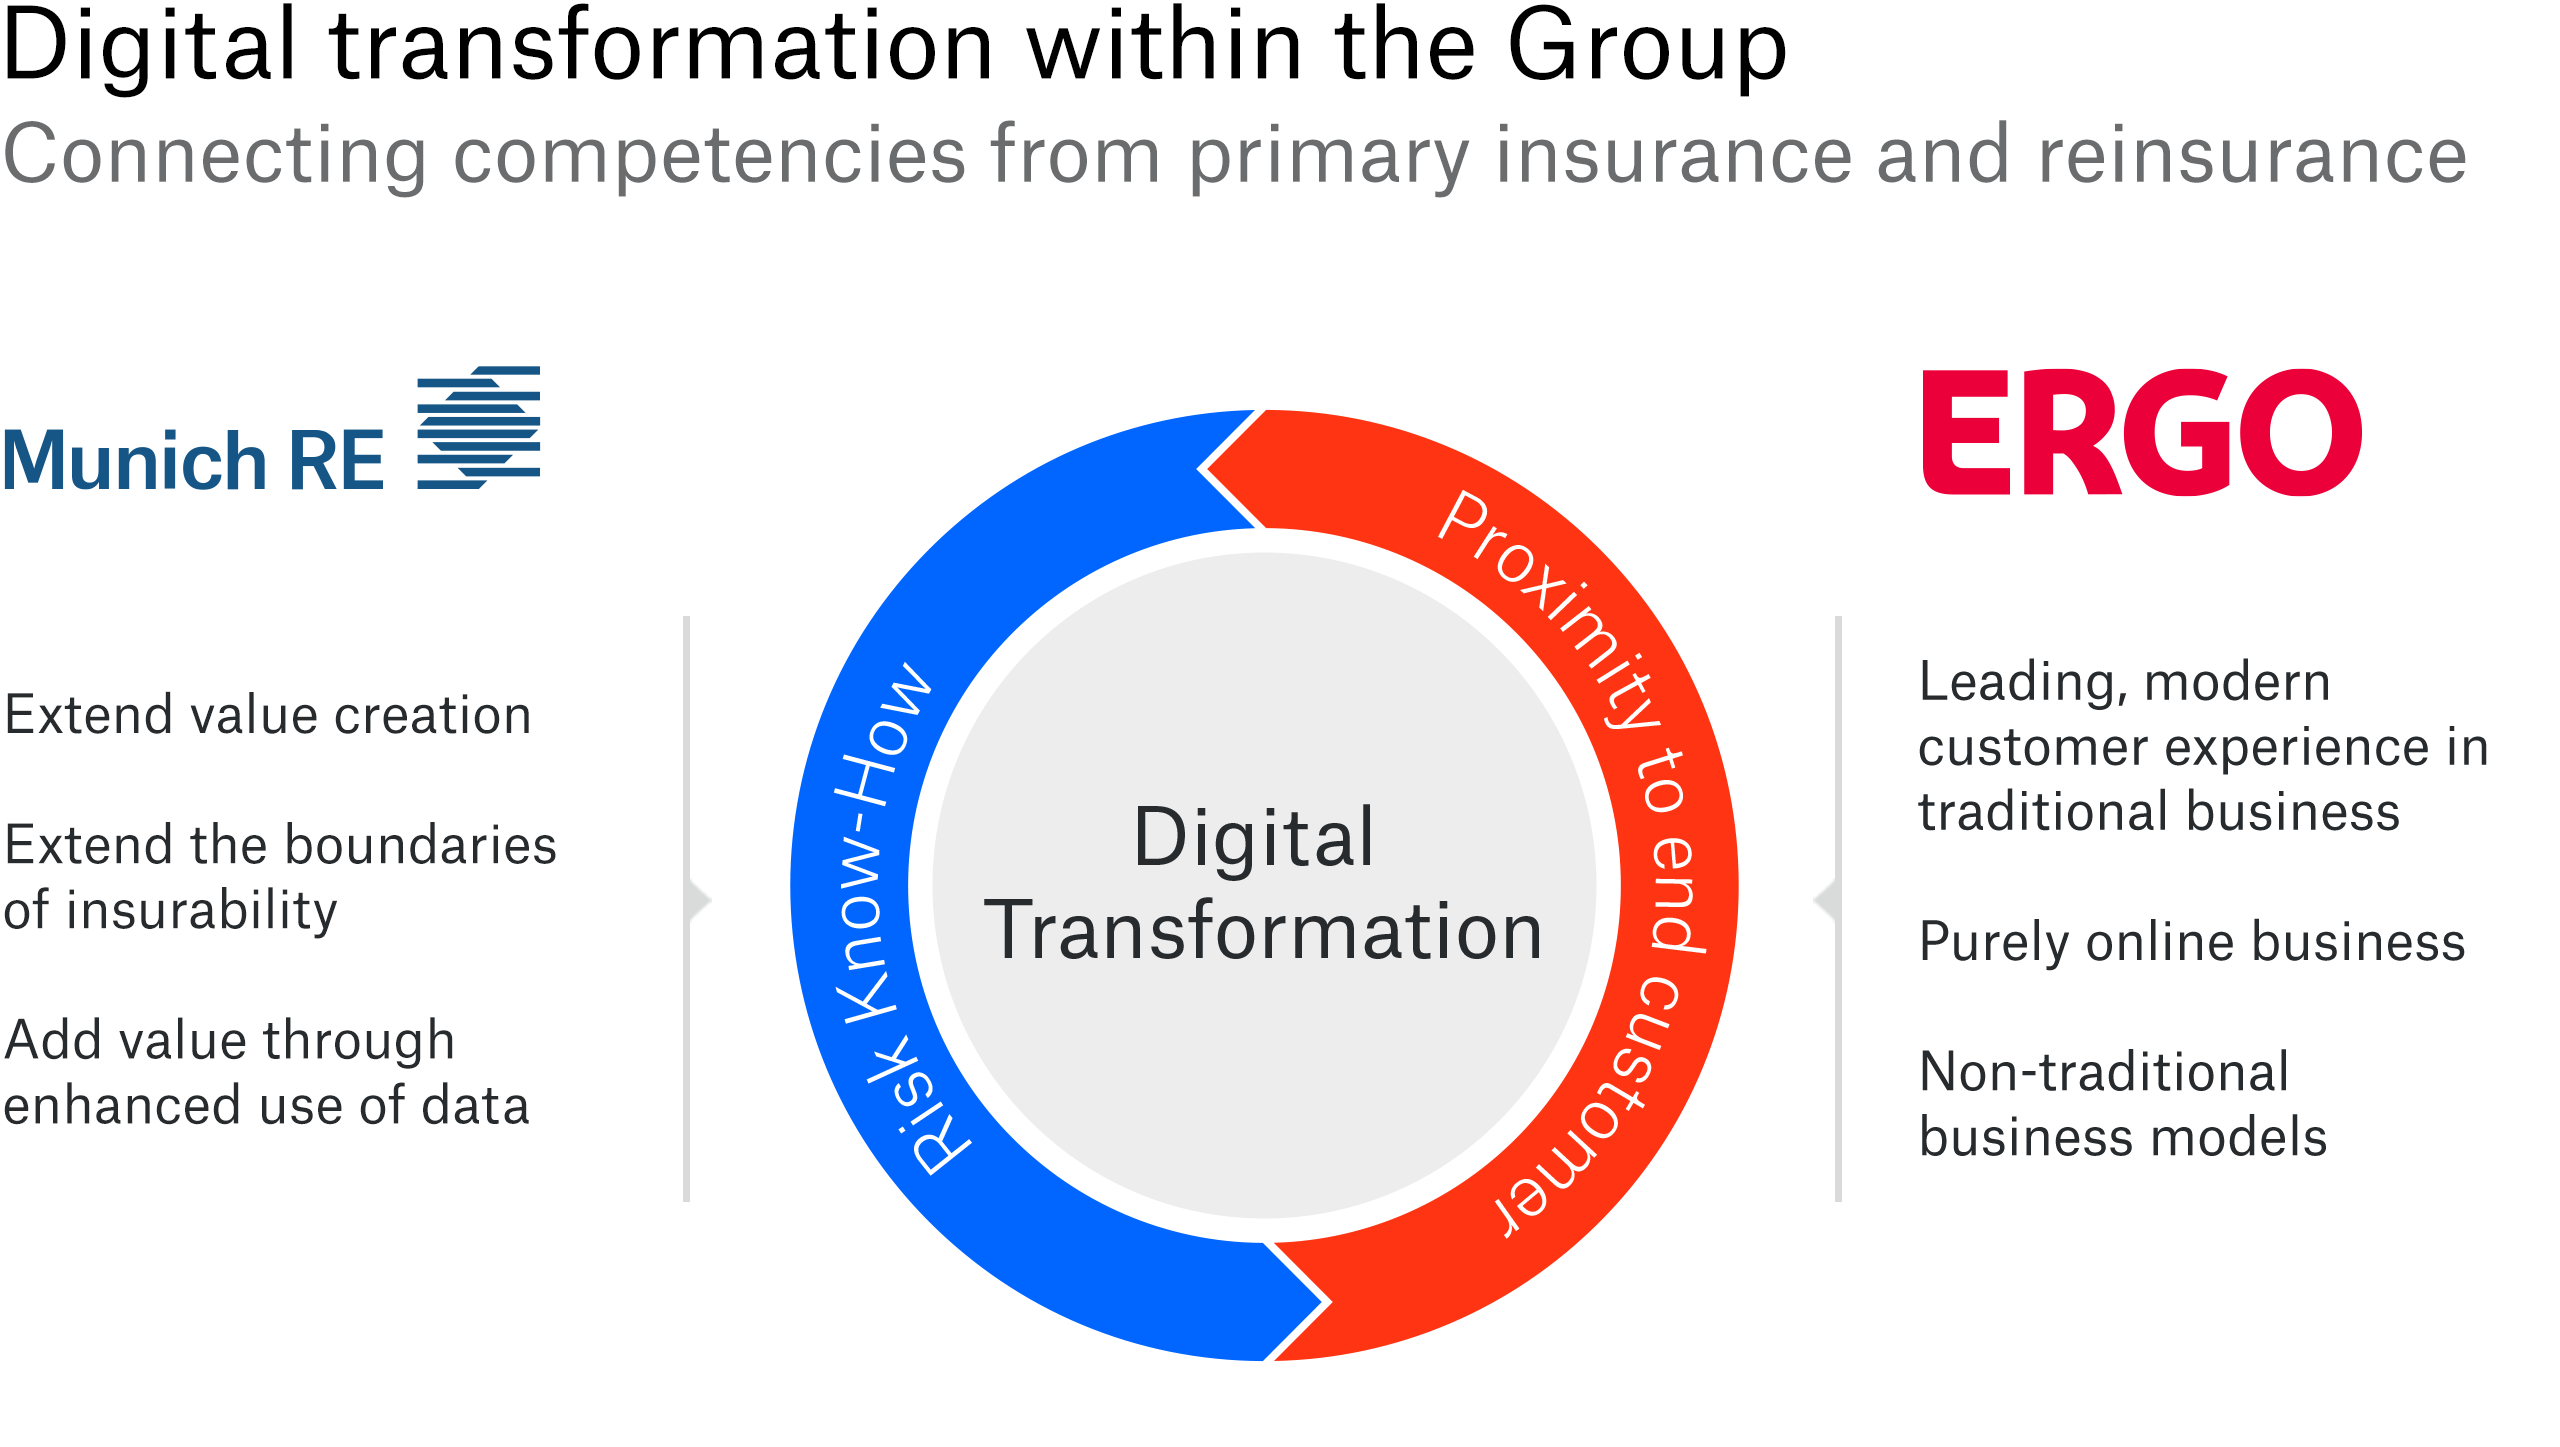 Pushing Munich Re's digital transformation by building on the expertise of its reinsurance and primary-insurance arms